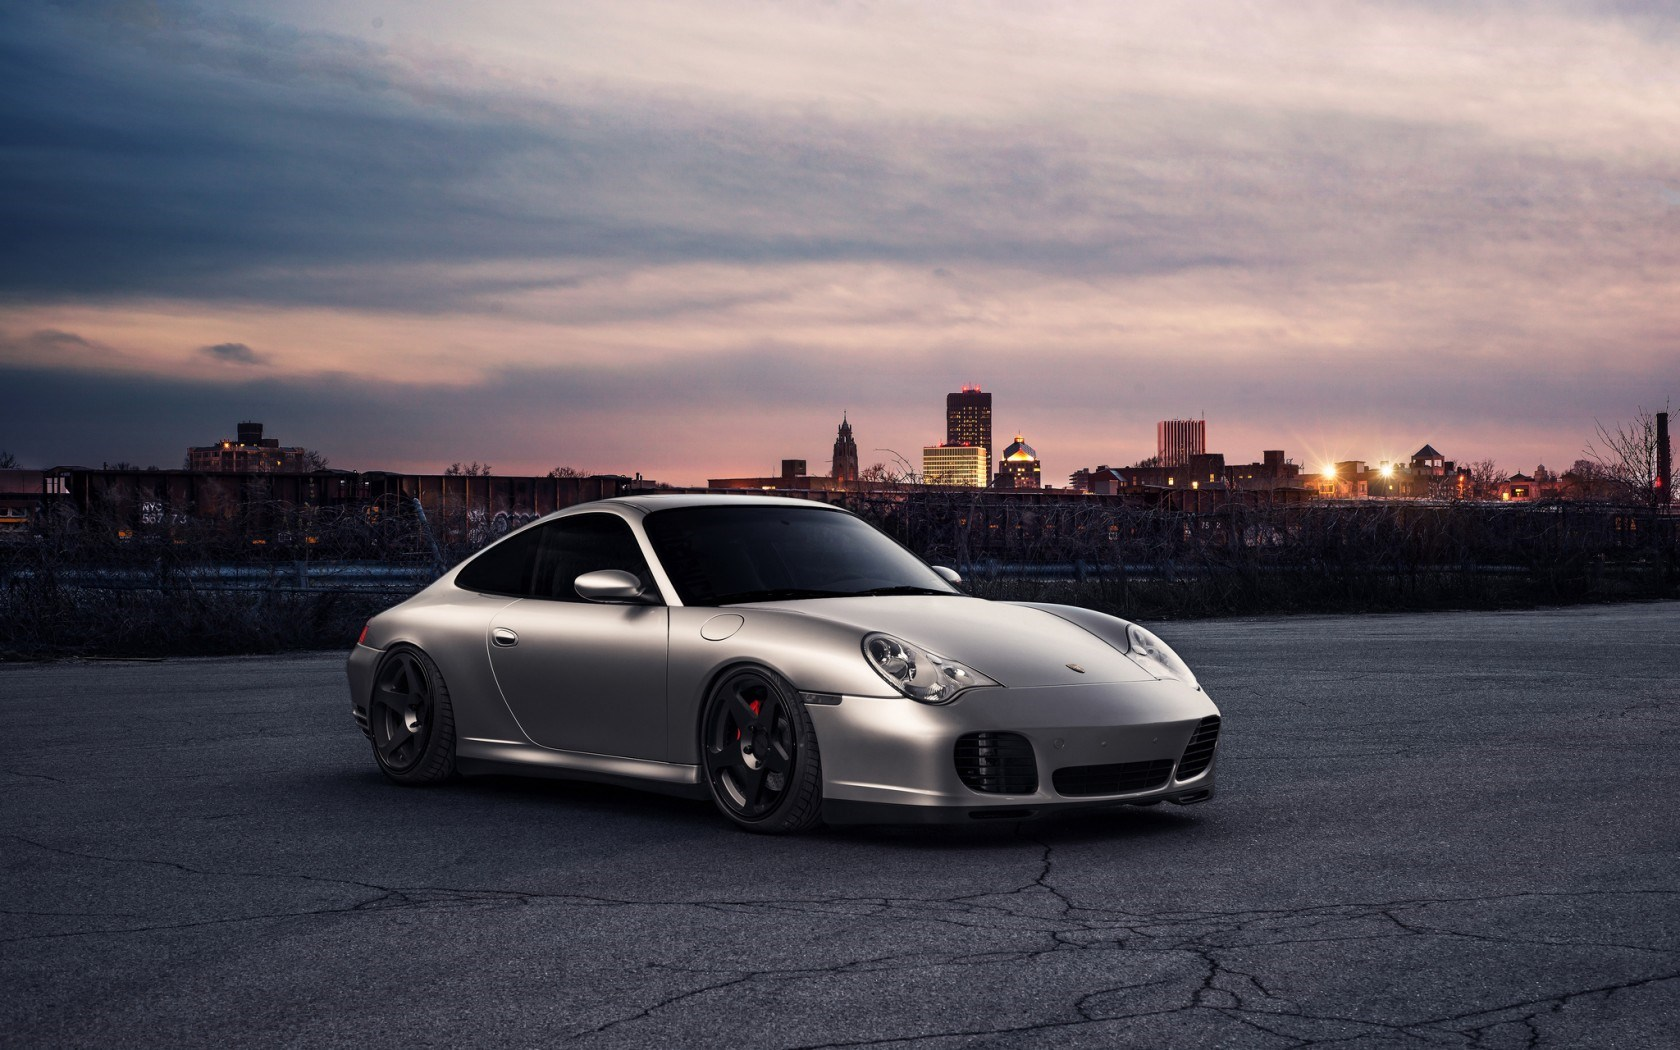 porsche 911 front city hd wallpaper wallpaper list - Porsche 911 Wallpaper Widescreen